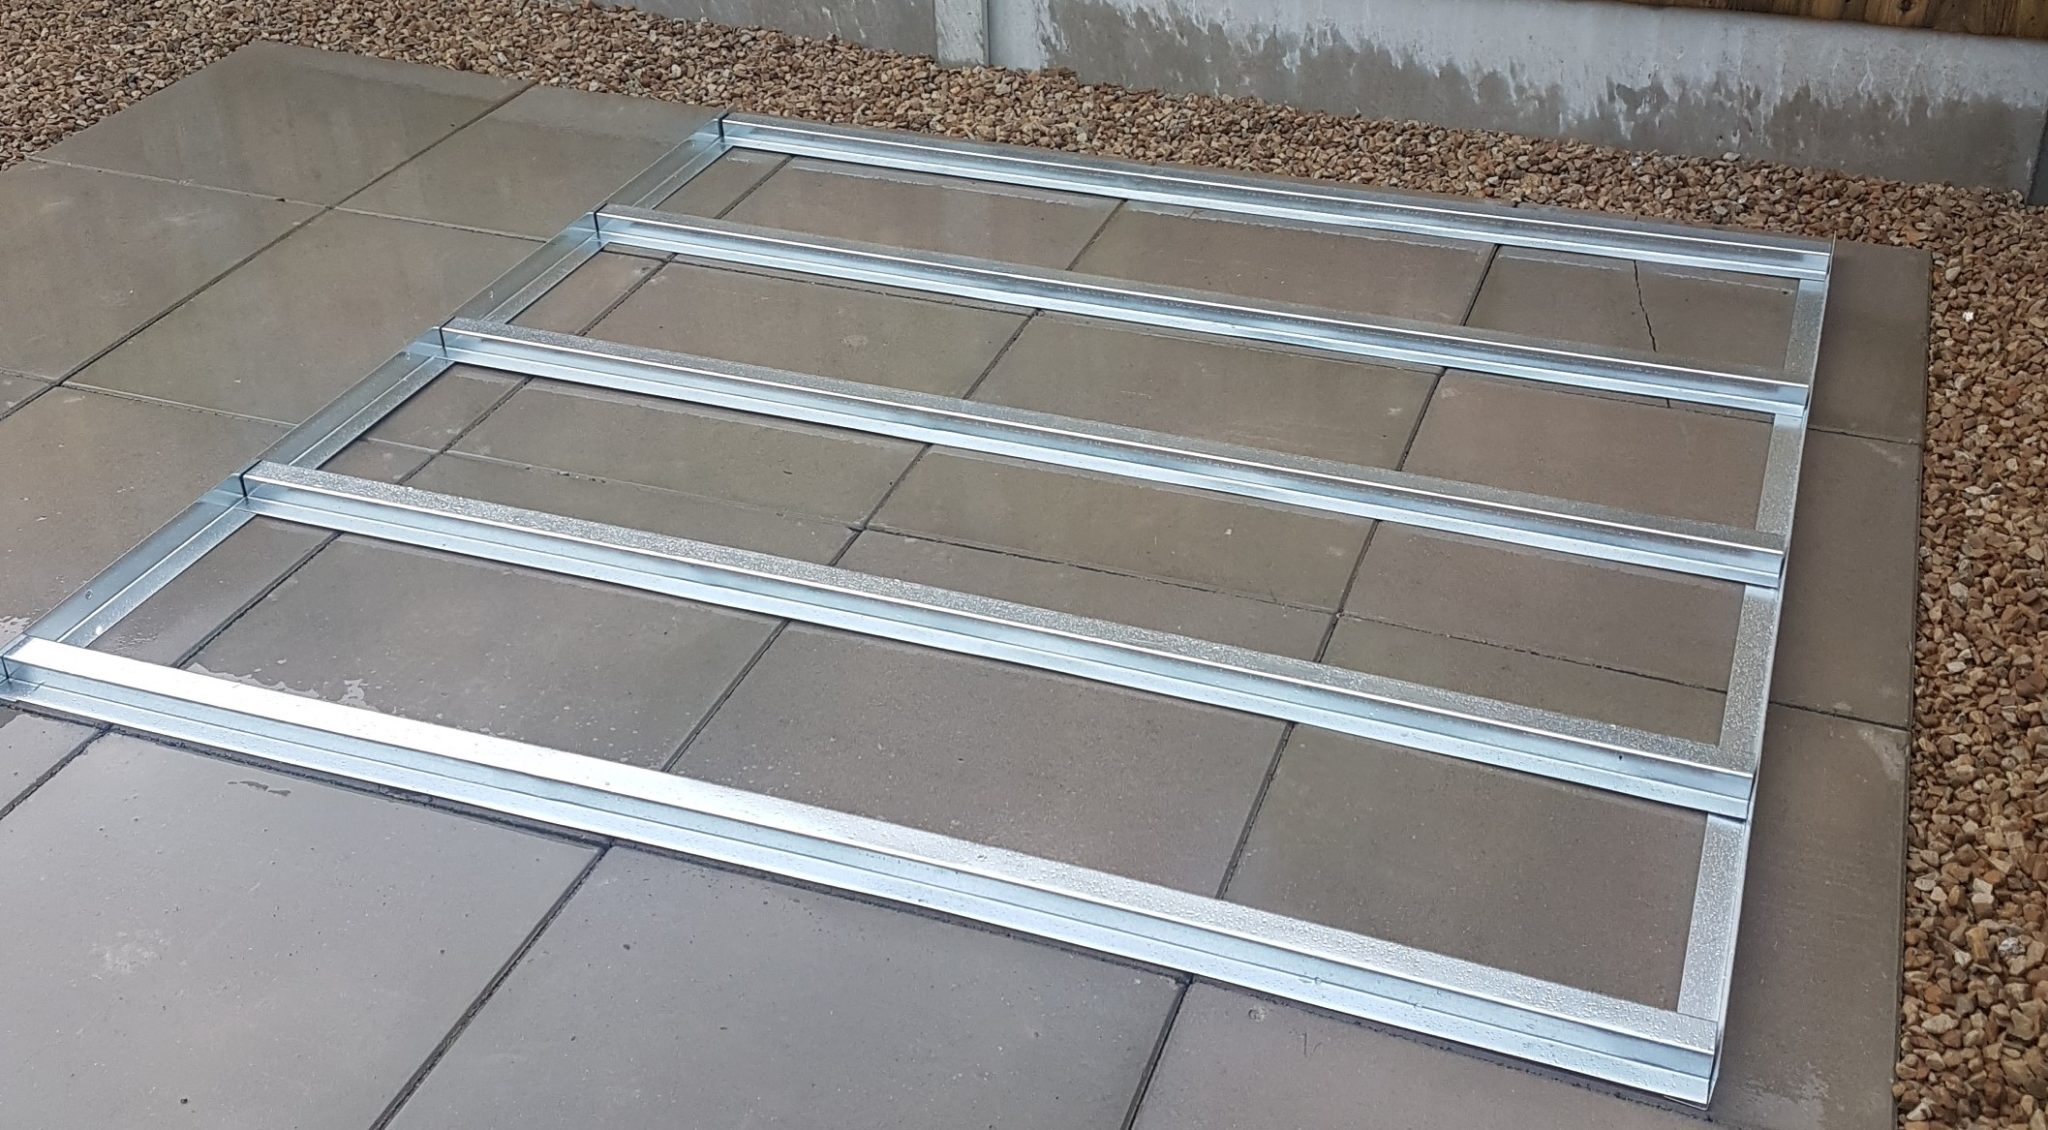 steel floor frames to suit our range of metal sheds and log stores. Suitable for all types of flooring such as wood planks, OSB sheeting, Aluminium check plate etc. (not included) Made from structural grade galvanized steel, these floor frames provide a solid base for your shed floor.